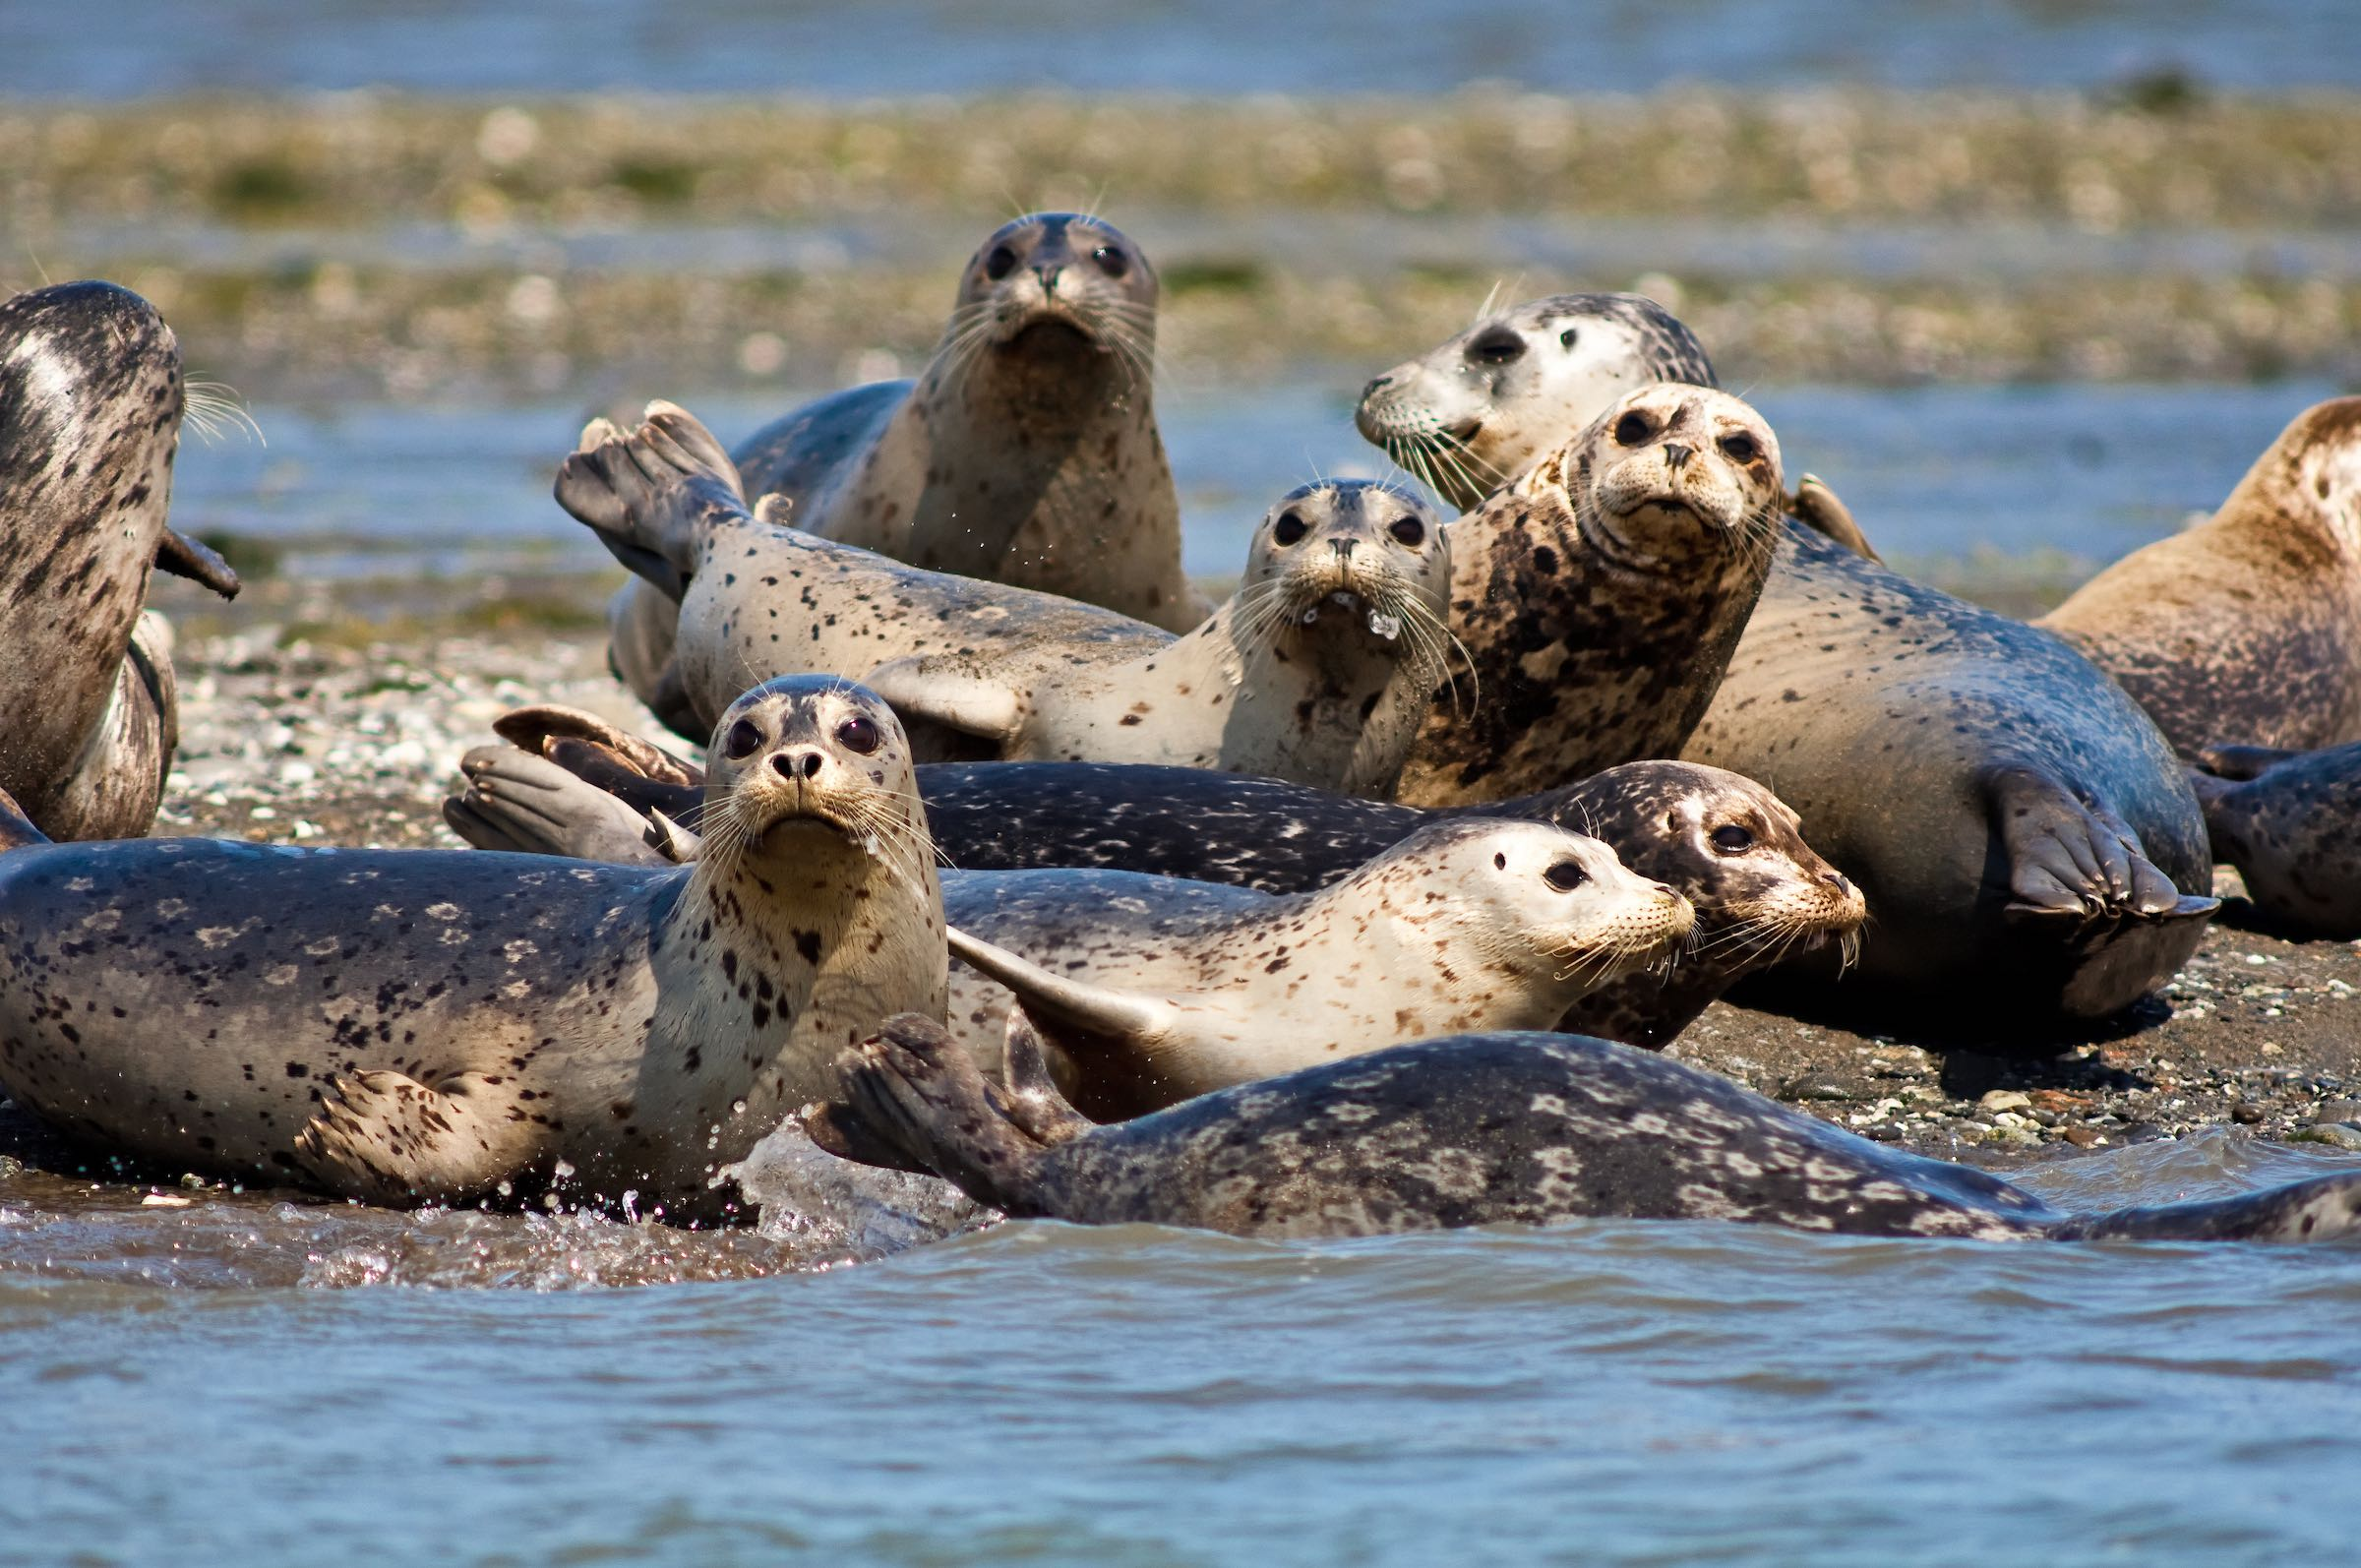 HARBOR SEALS. © GIVEN PHOTOGRAPHY 2018